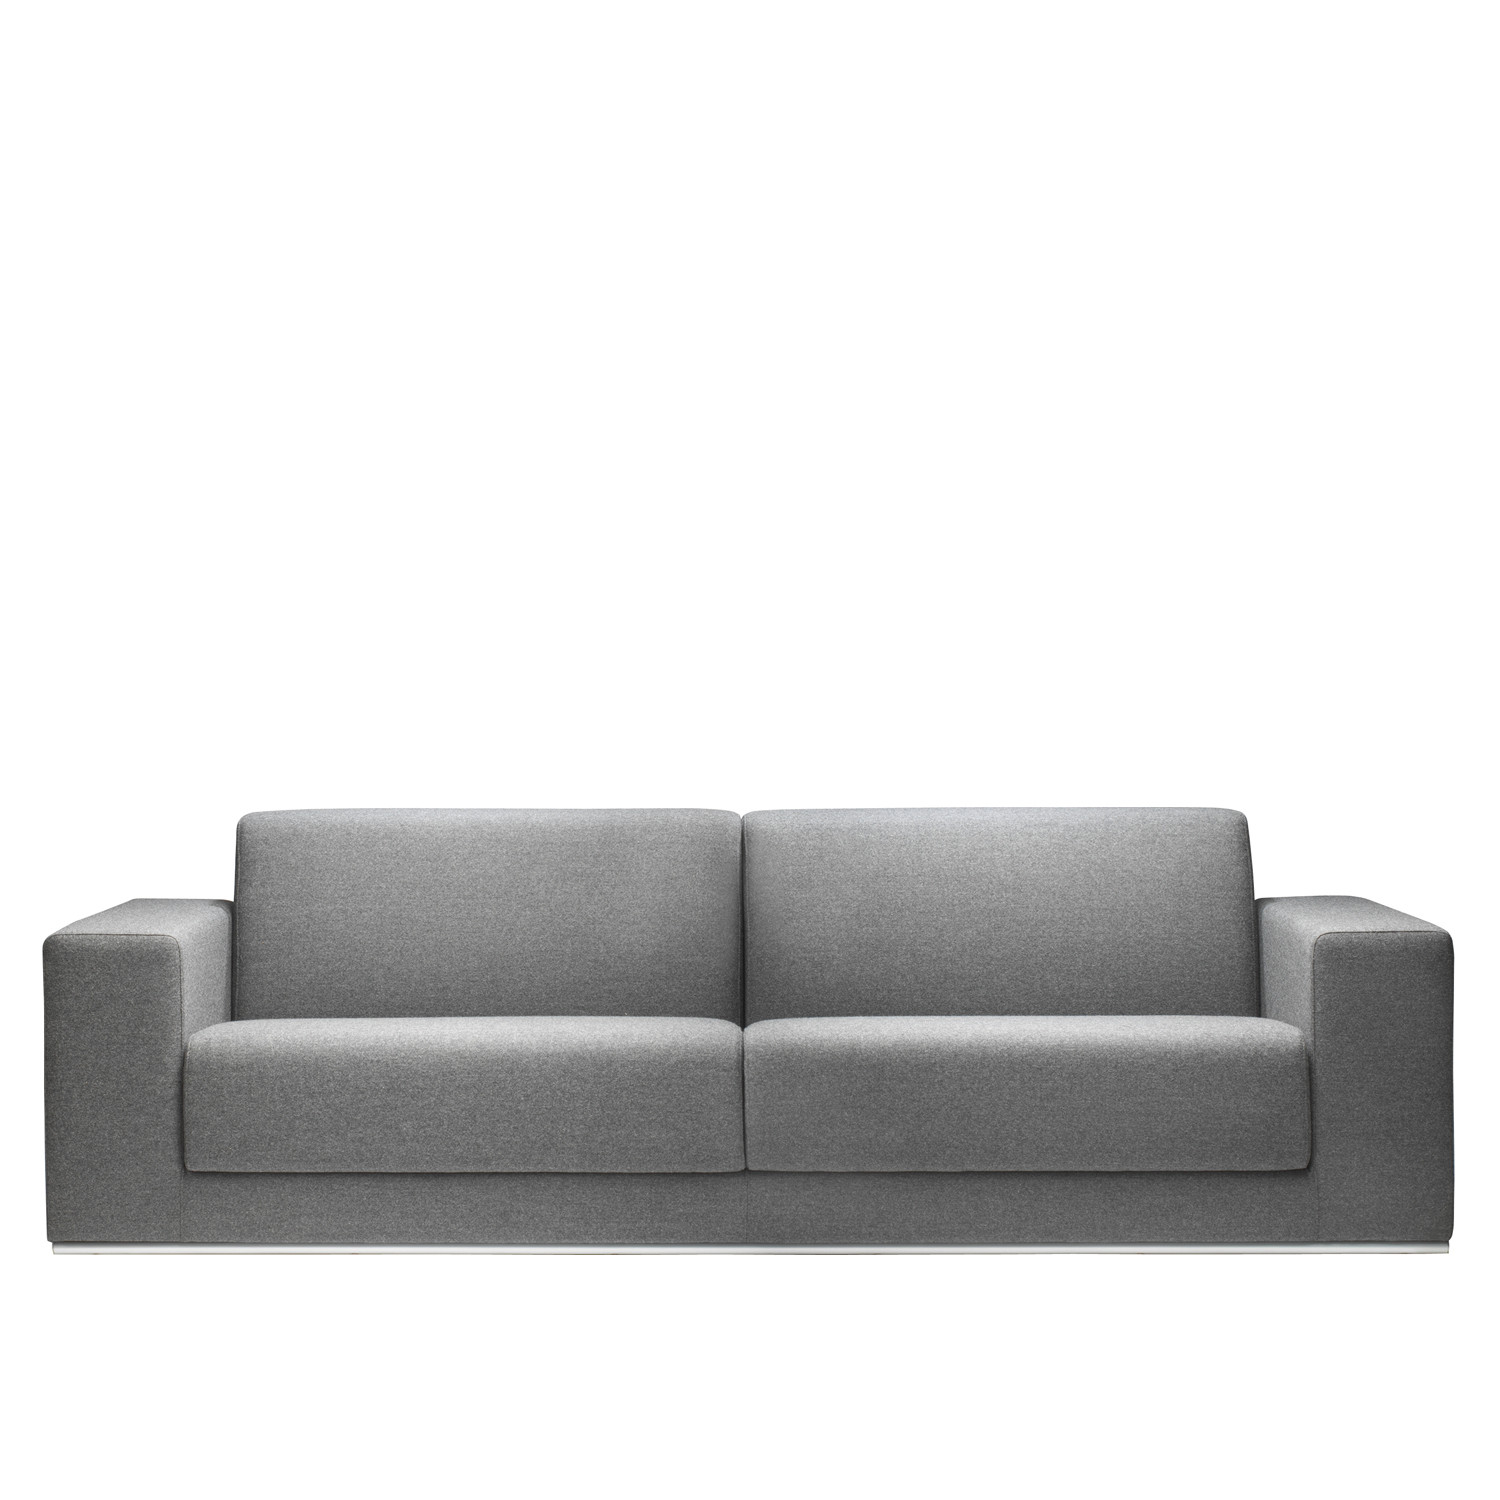 Ortega 2.5 Seater Sofa